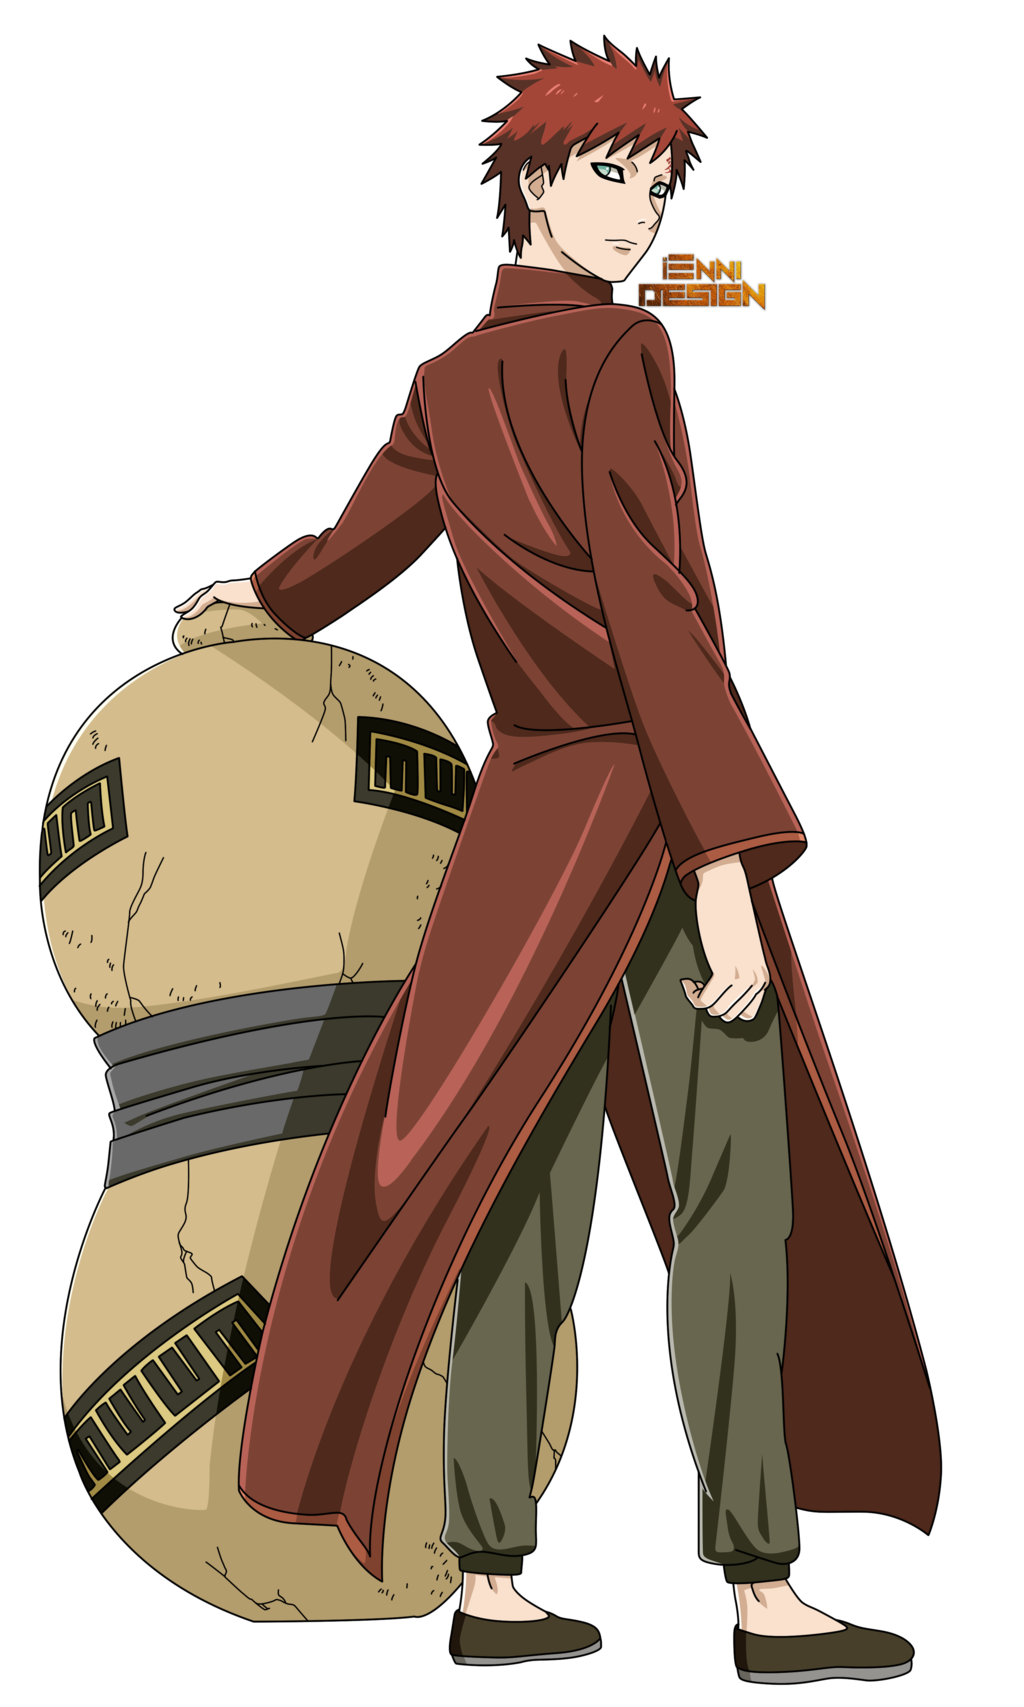 Chinese Clothing|Gaara of the Sand - Gaara PNG